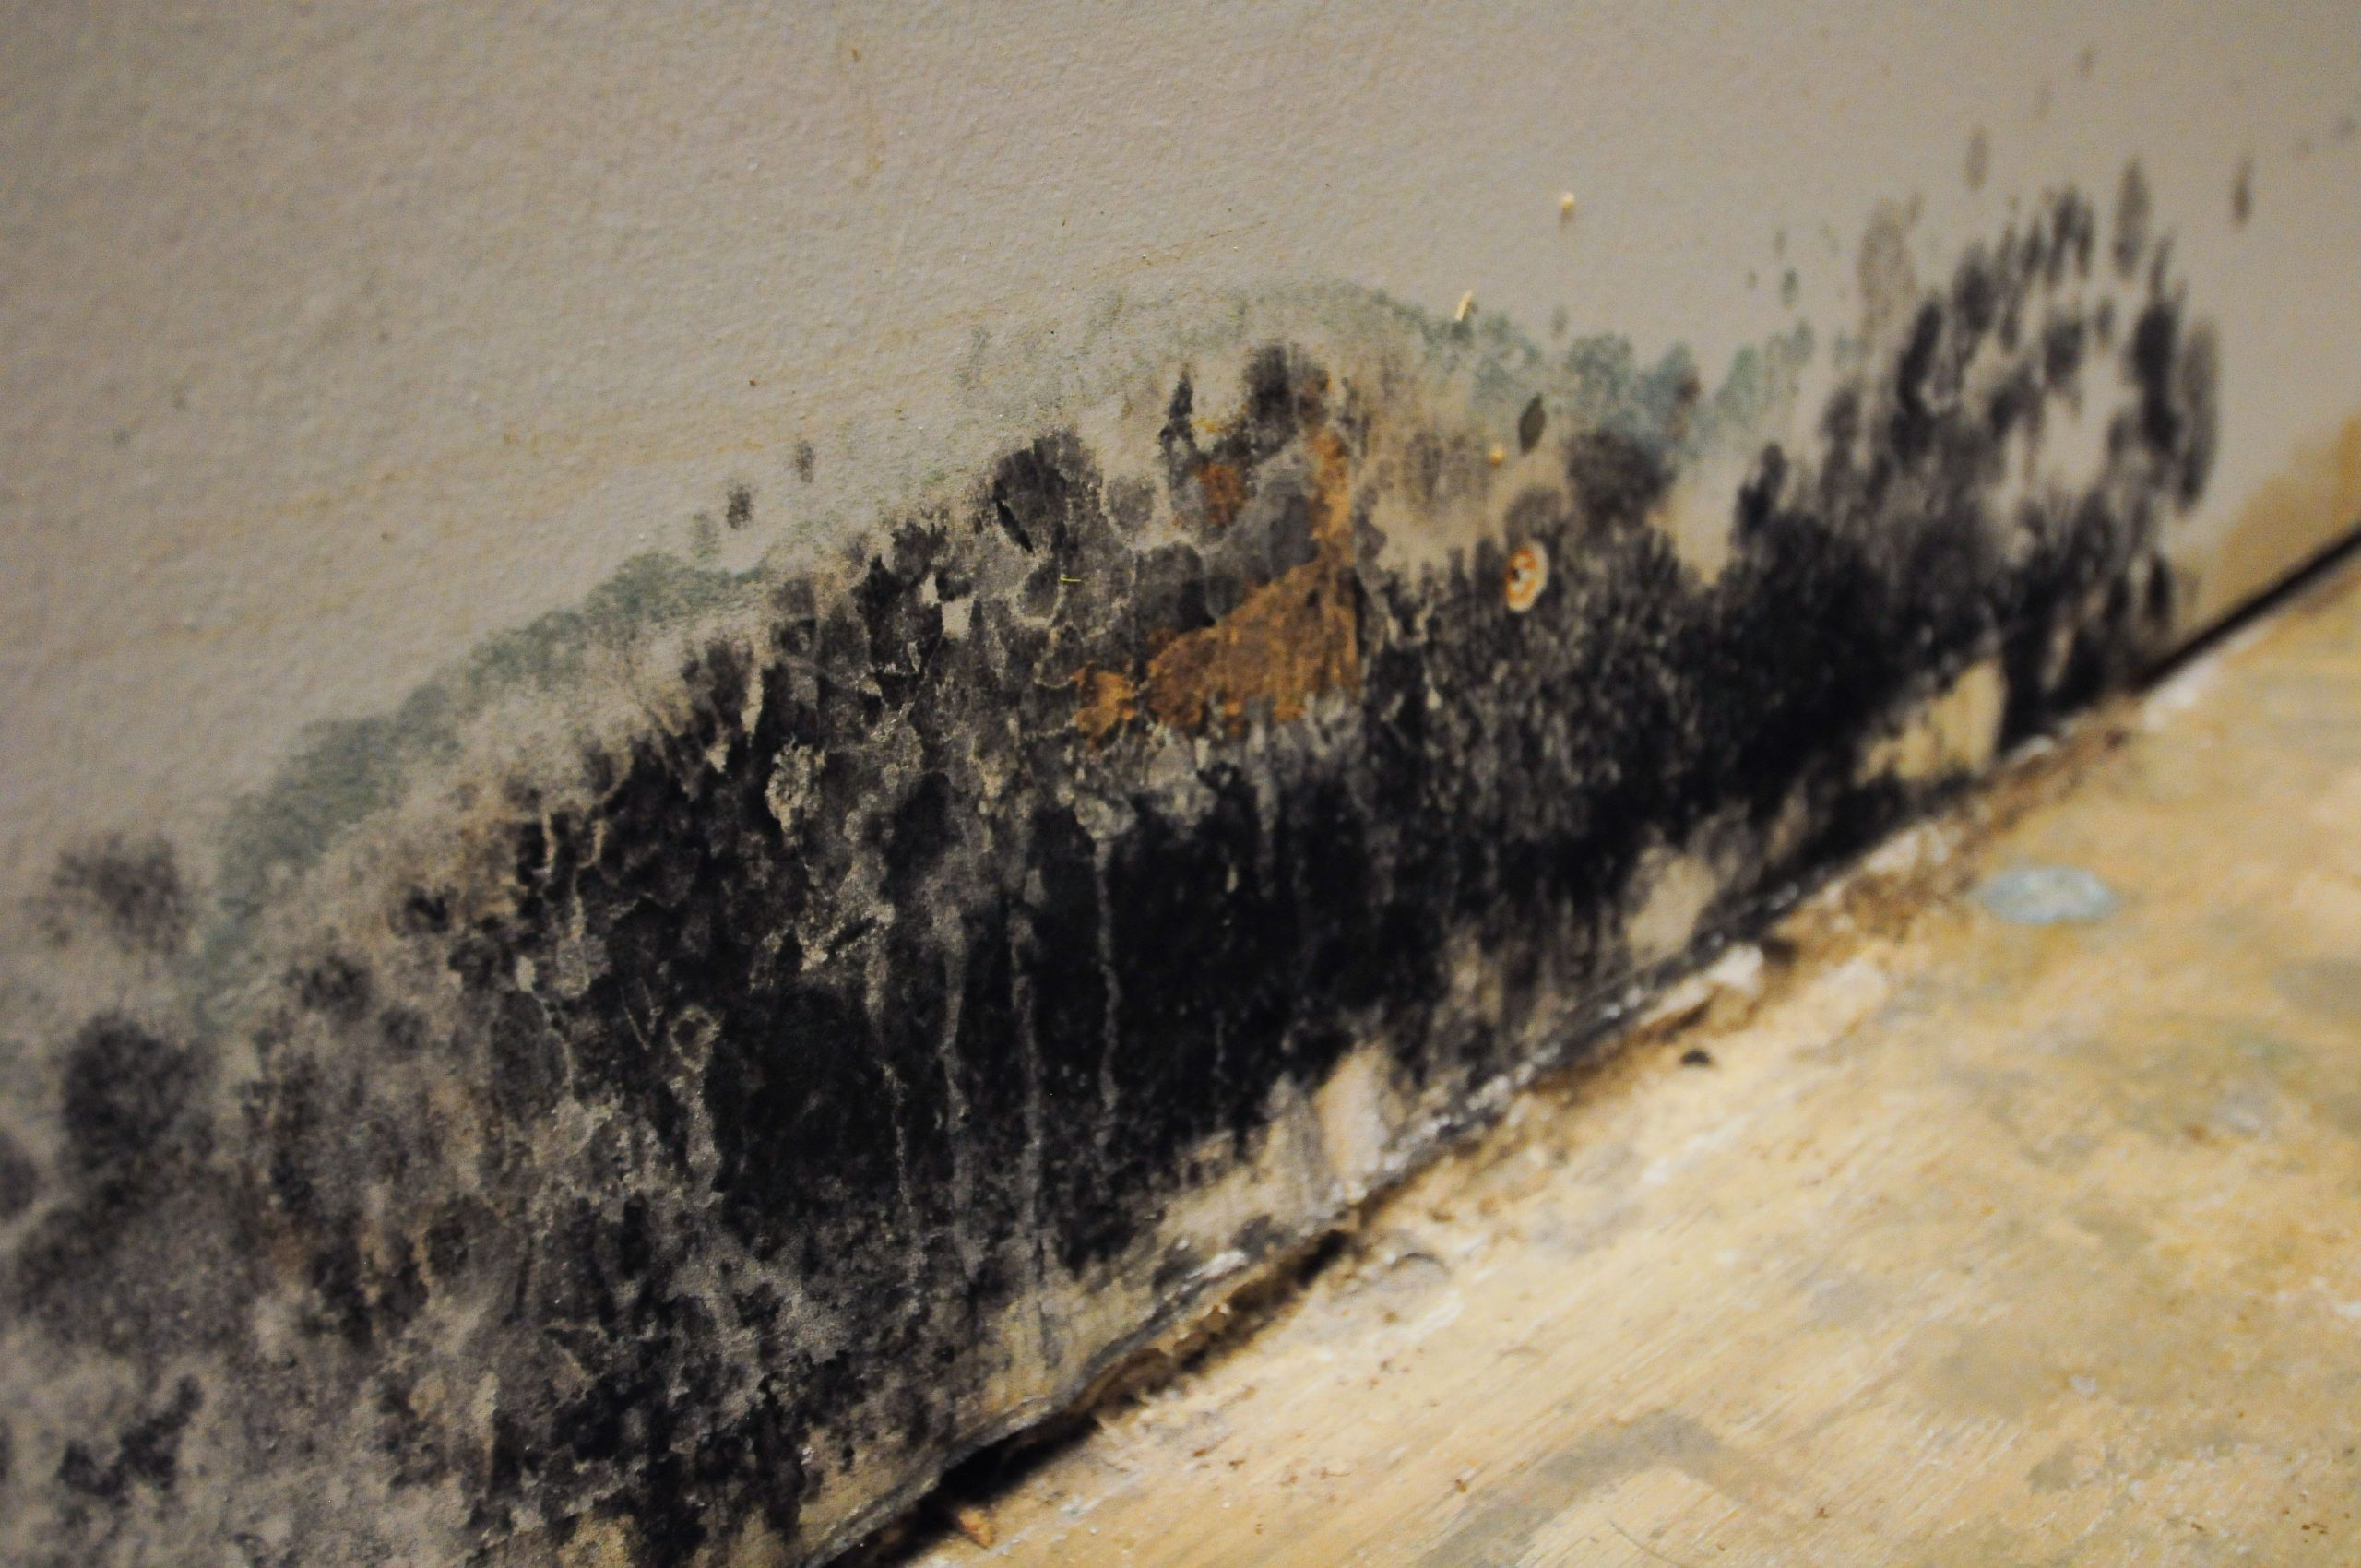 Why You Shouldn't Use Bleach on Mold